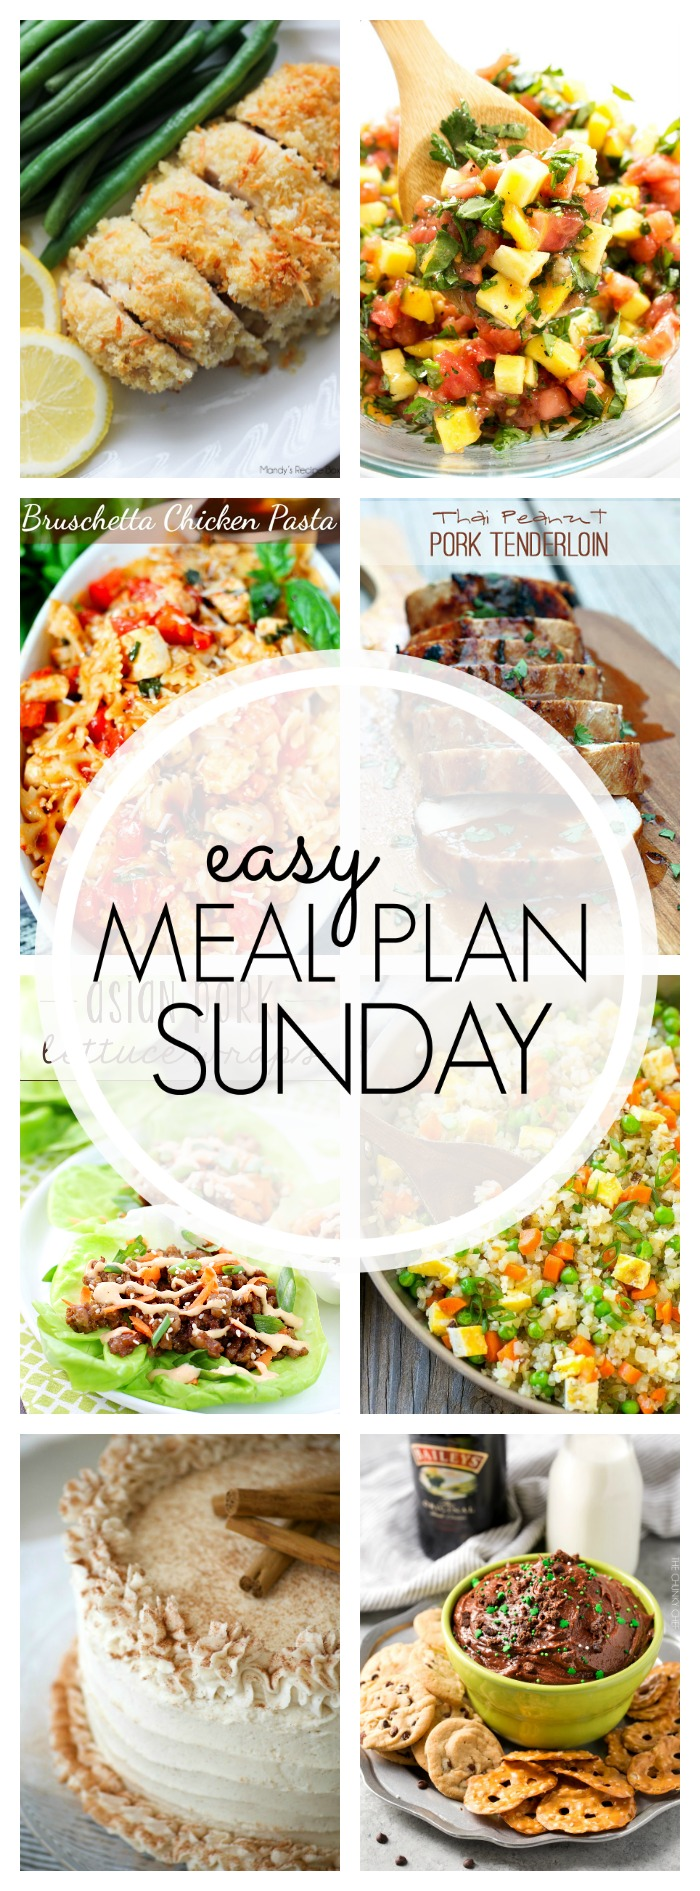 Easy Meal Plan Sunday #92